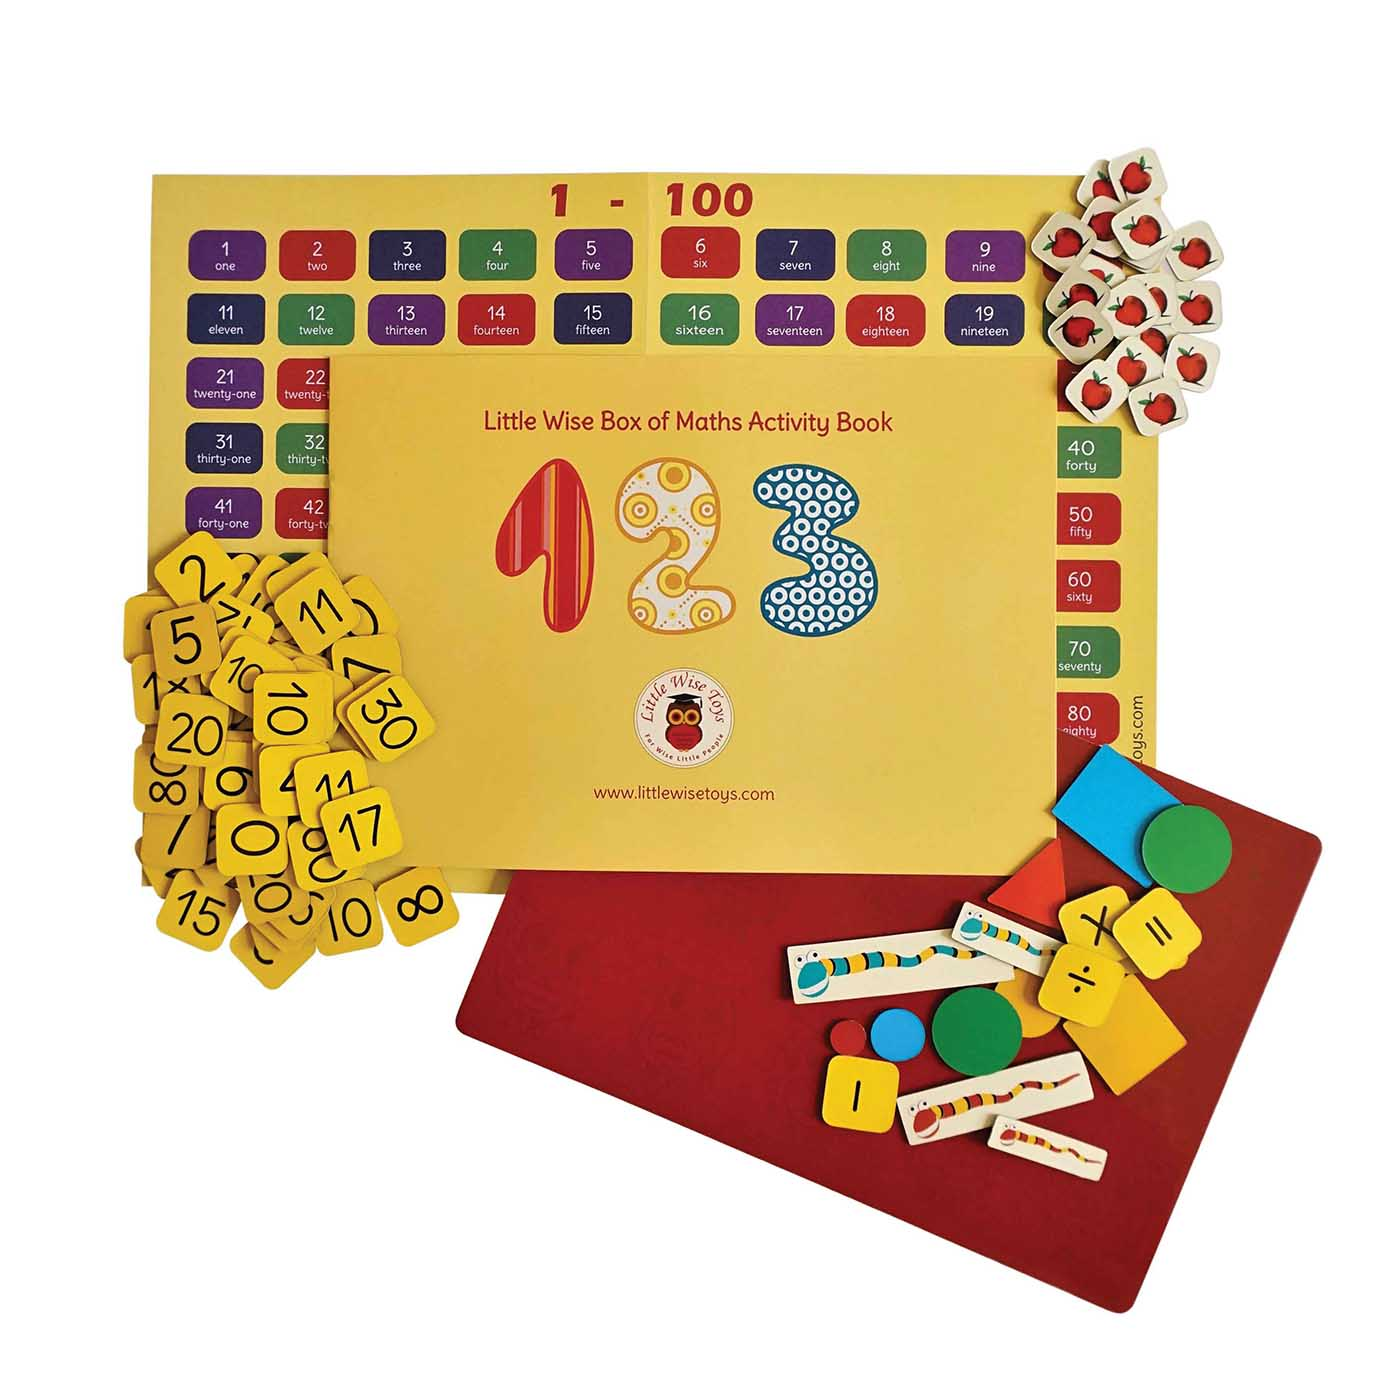 Maths game for children aged 3-6. Maths and numbers educational toy and learning toy.